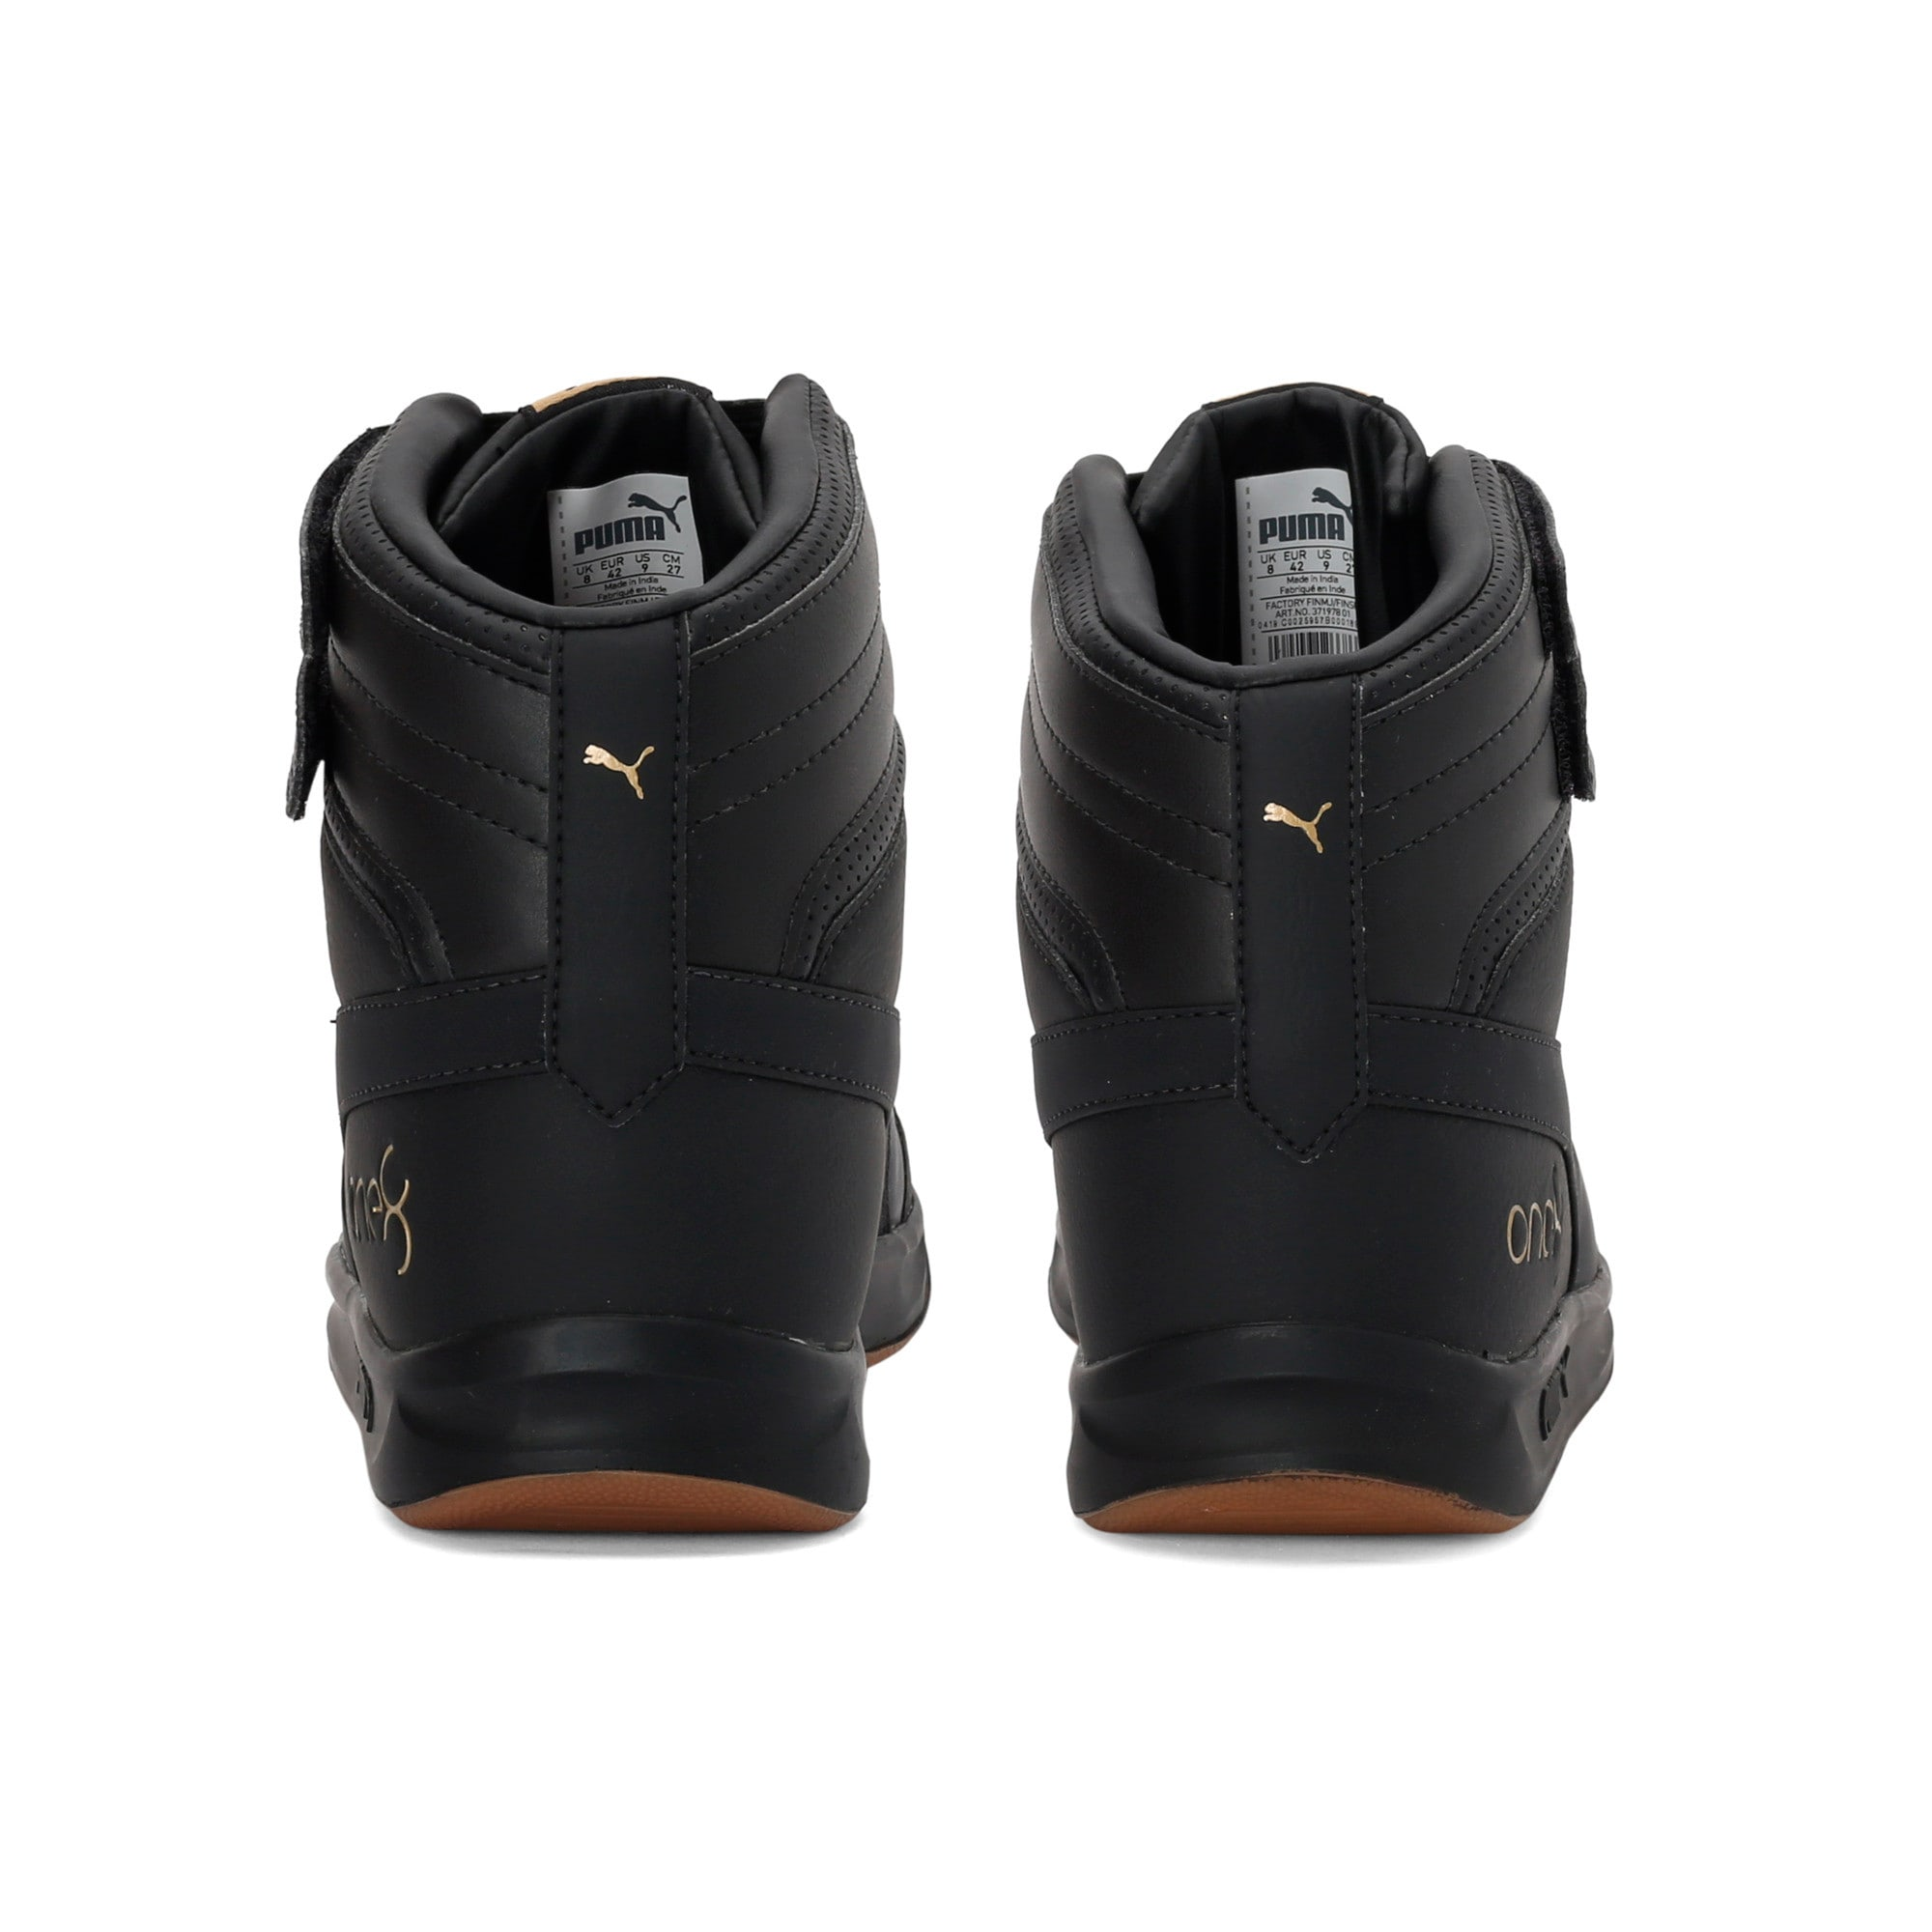 Thumbnail 3 of one8 Prime Mid Unisex Sneakers, Puma Black-Puma Team Gold, medium-IND